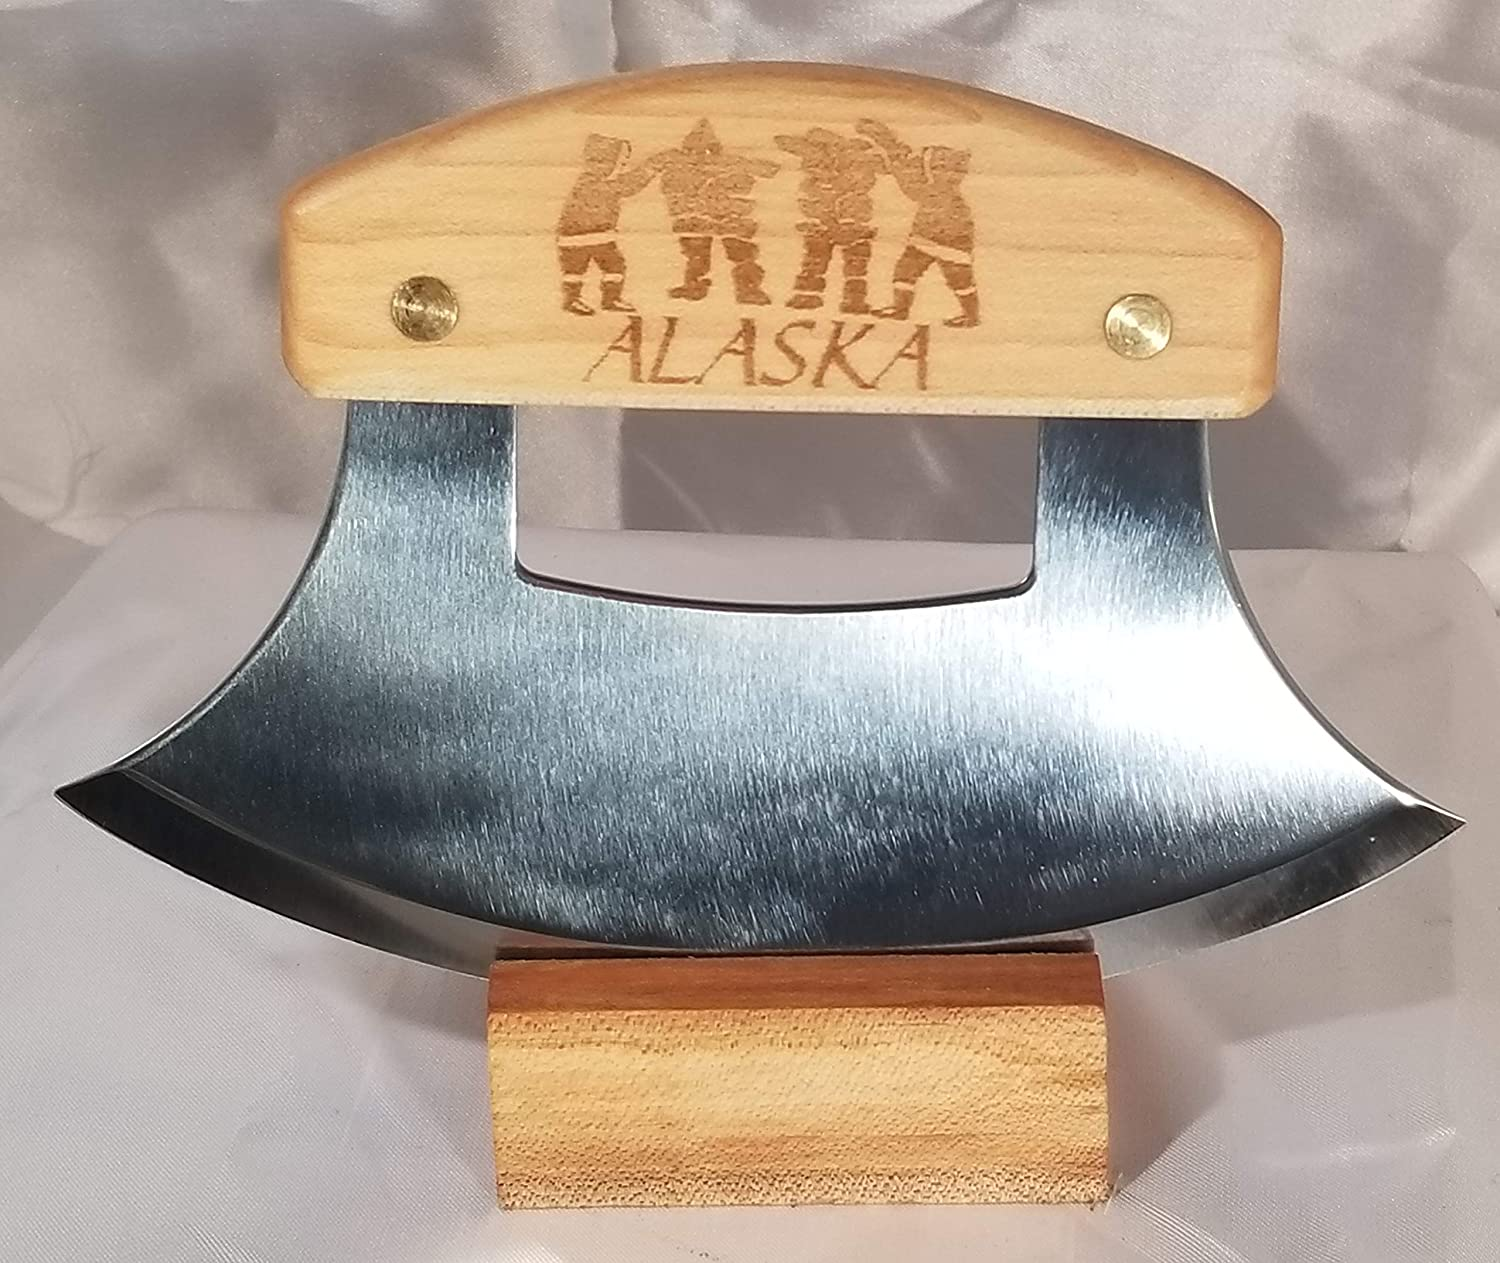 Alaskan Heritage Series Inupiat Style Ulu with Stone Images Etched Birchwood Handle and 6.25 Inch Blade The Ulu Factory